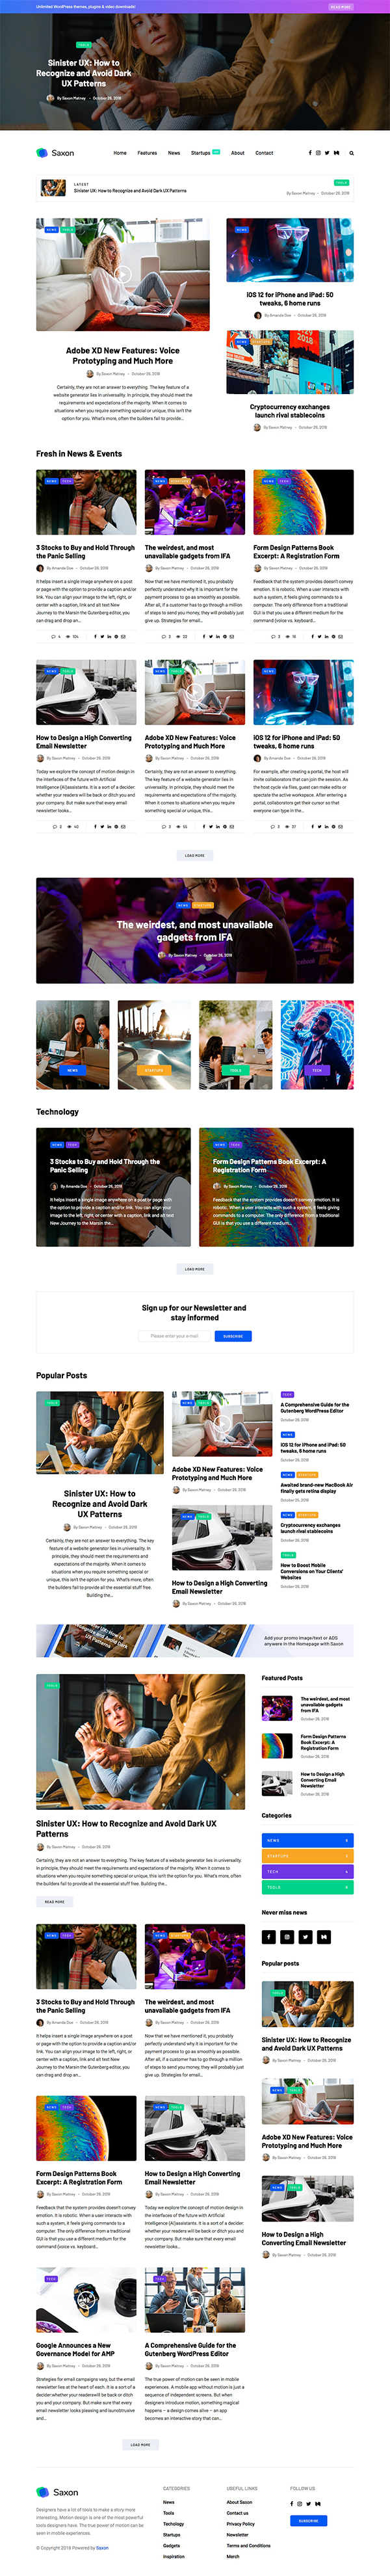 Saxon - Viral Content Blog & Magazine WordPress Theme